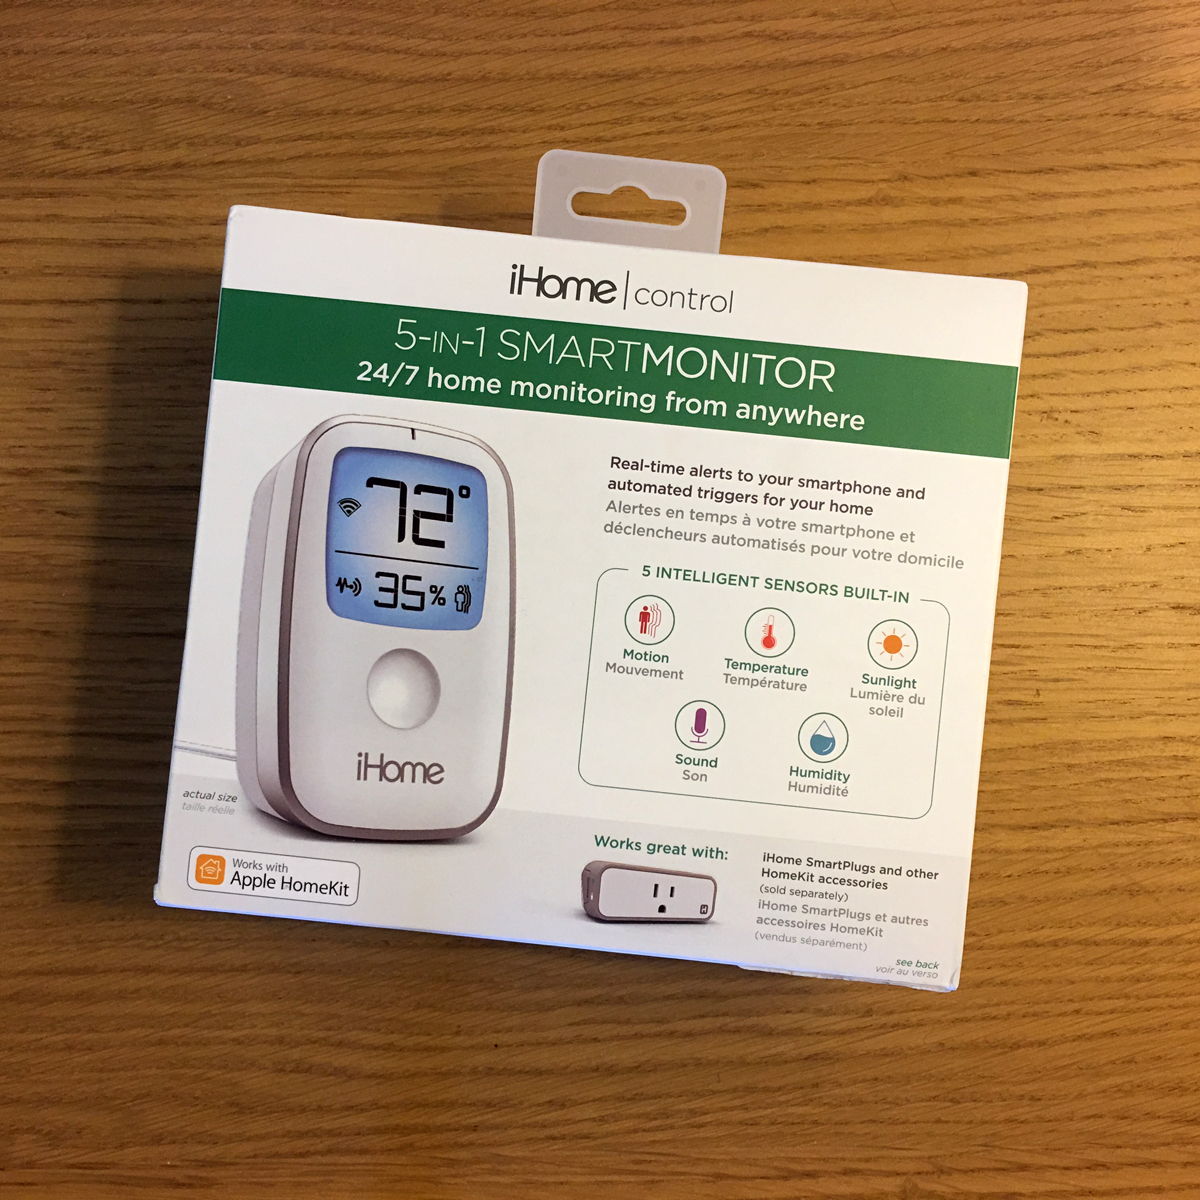 Wondrous Ihome Iss50 5 In 1 Smart Monitor Review Homekit News And Download Free Architecture Designs Rallybritishbridgeorg